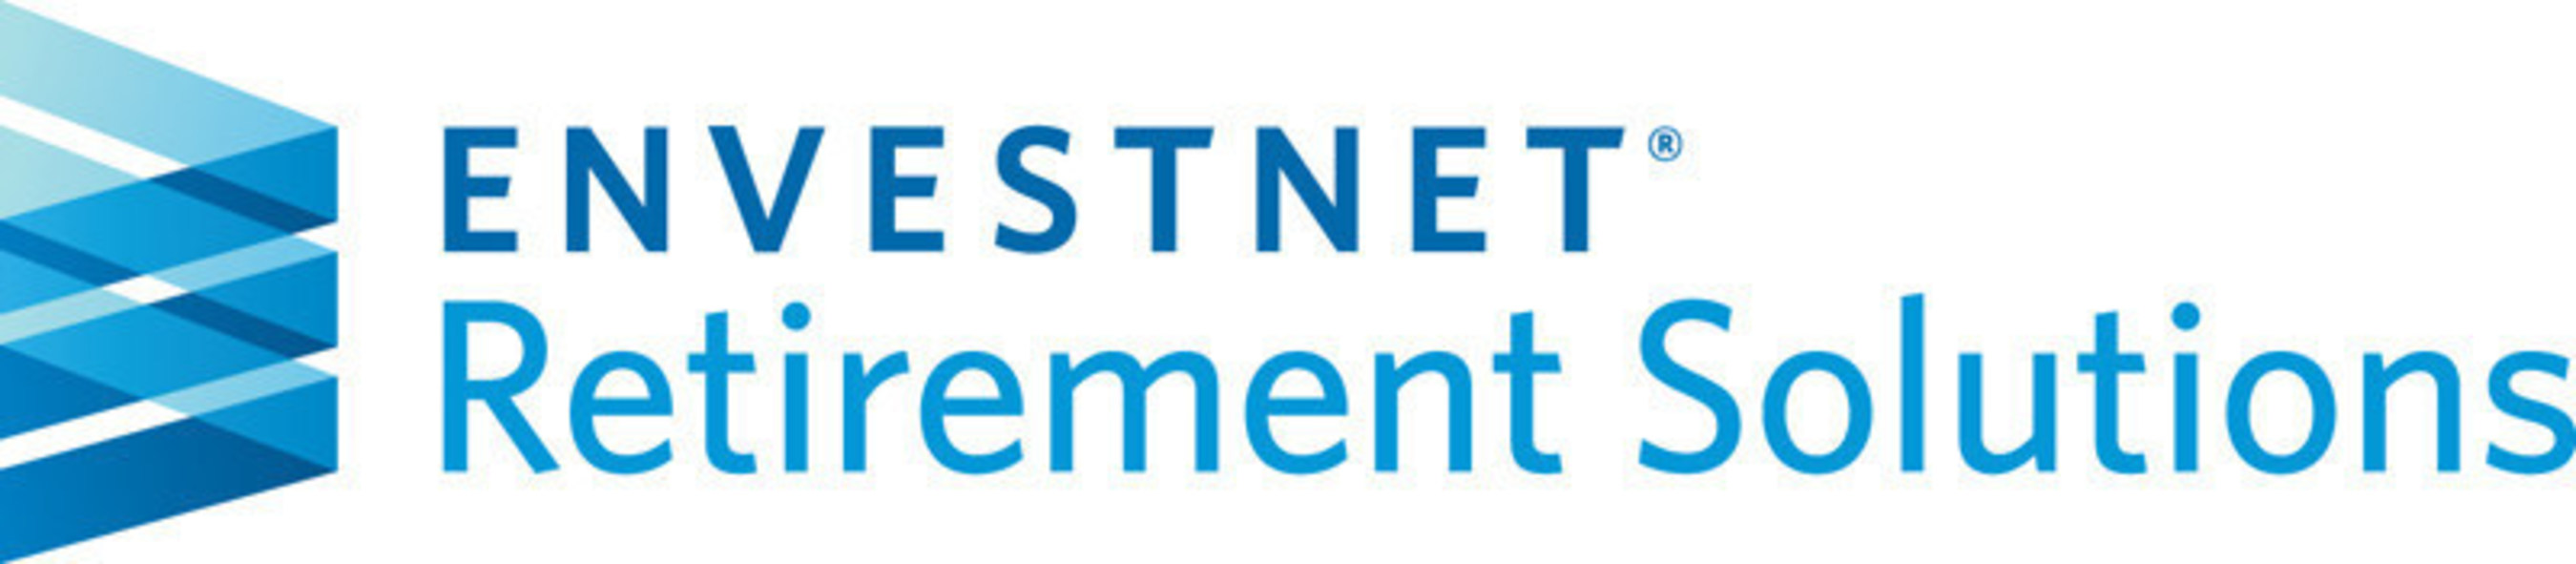 Envestnet | Retirement Solutions (ERS), a subsidiary of Envestnet, Inc., provides retirement advisors with an integrated platform that combines one of the industry's leading practice management technology, research and due diligence, data aggregation, compliance tools, and intelligent managed account solutions. (PRNewsFoto/Envestnet)